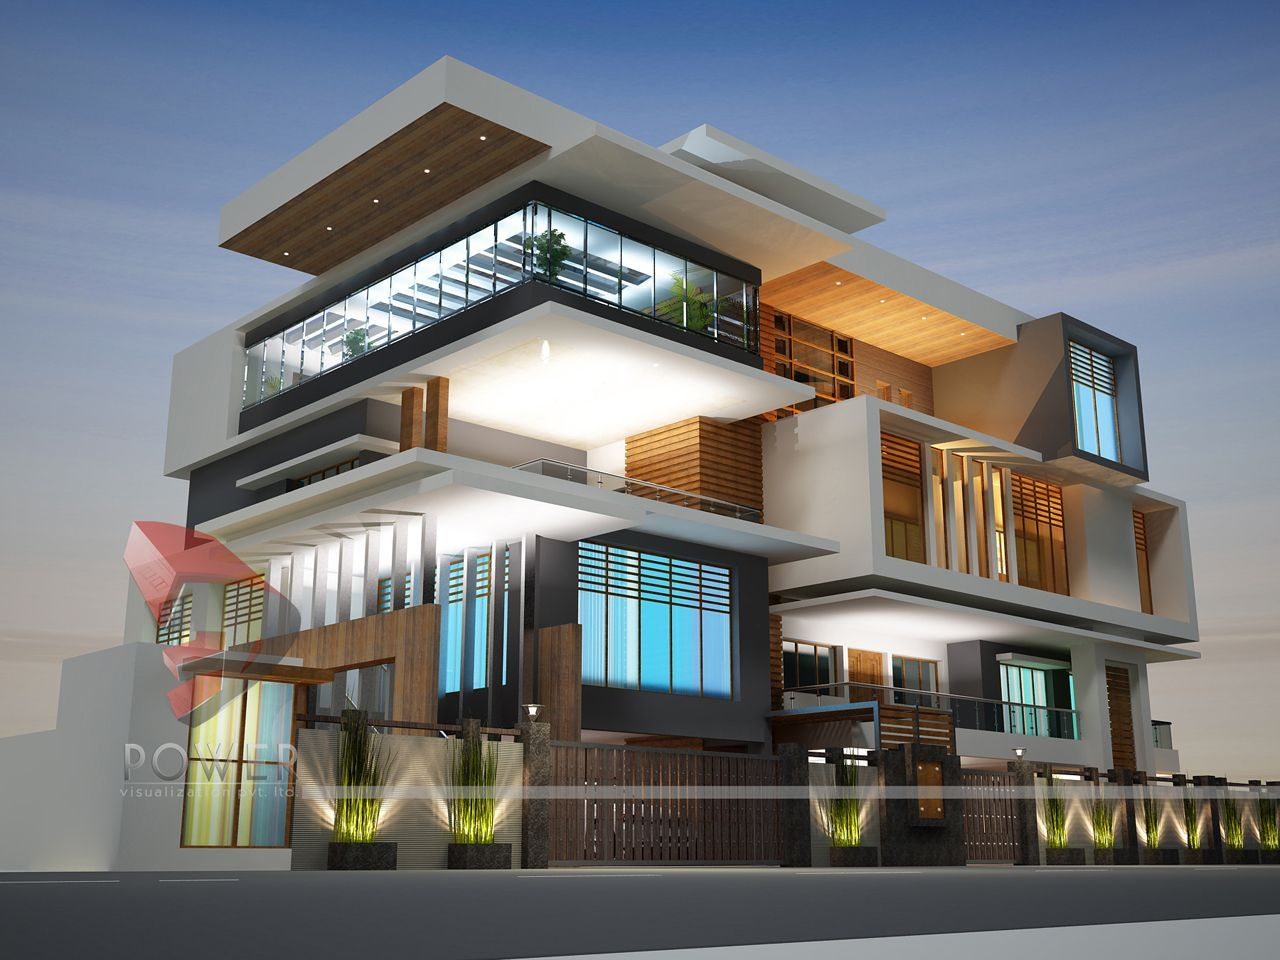 Modern house design in india architecture india modern for Beautiful architecture houses